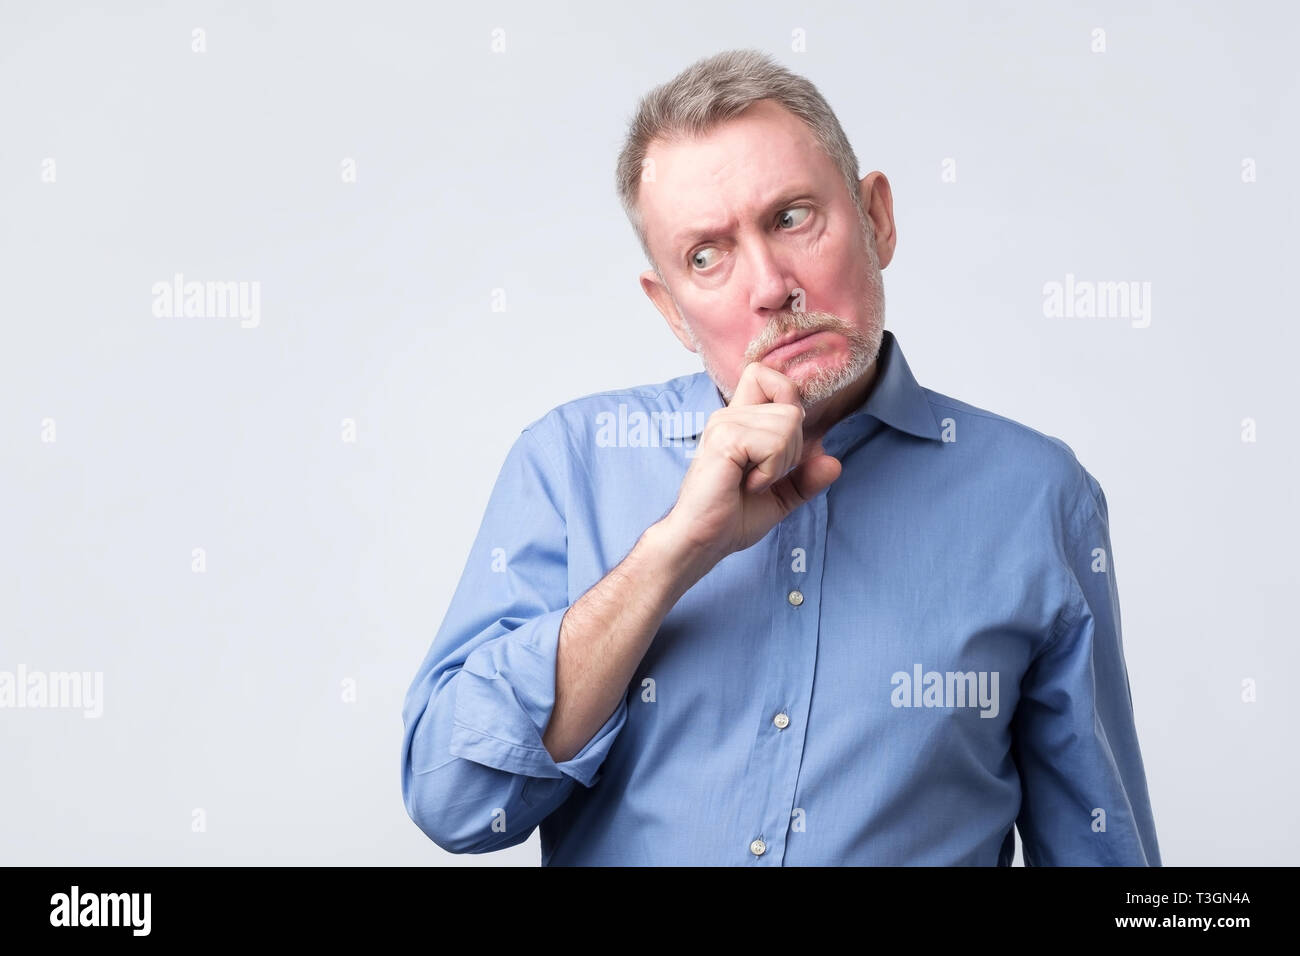 an thinking about his problems, expressing some doubts - Stock Image